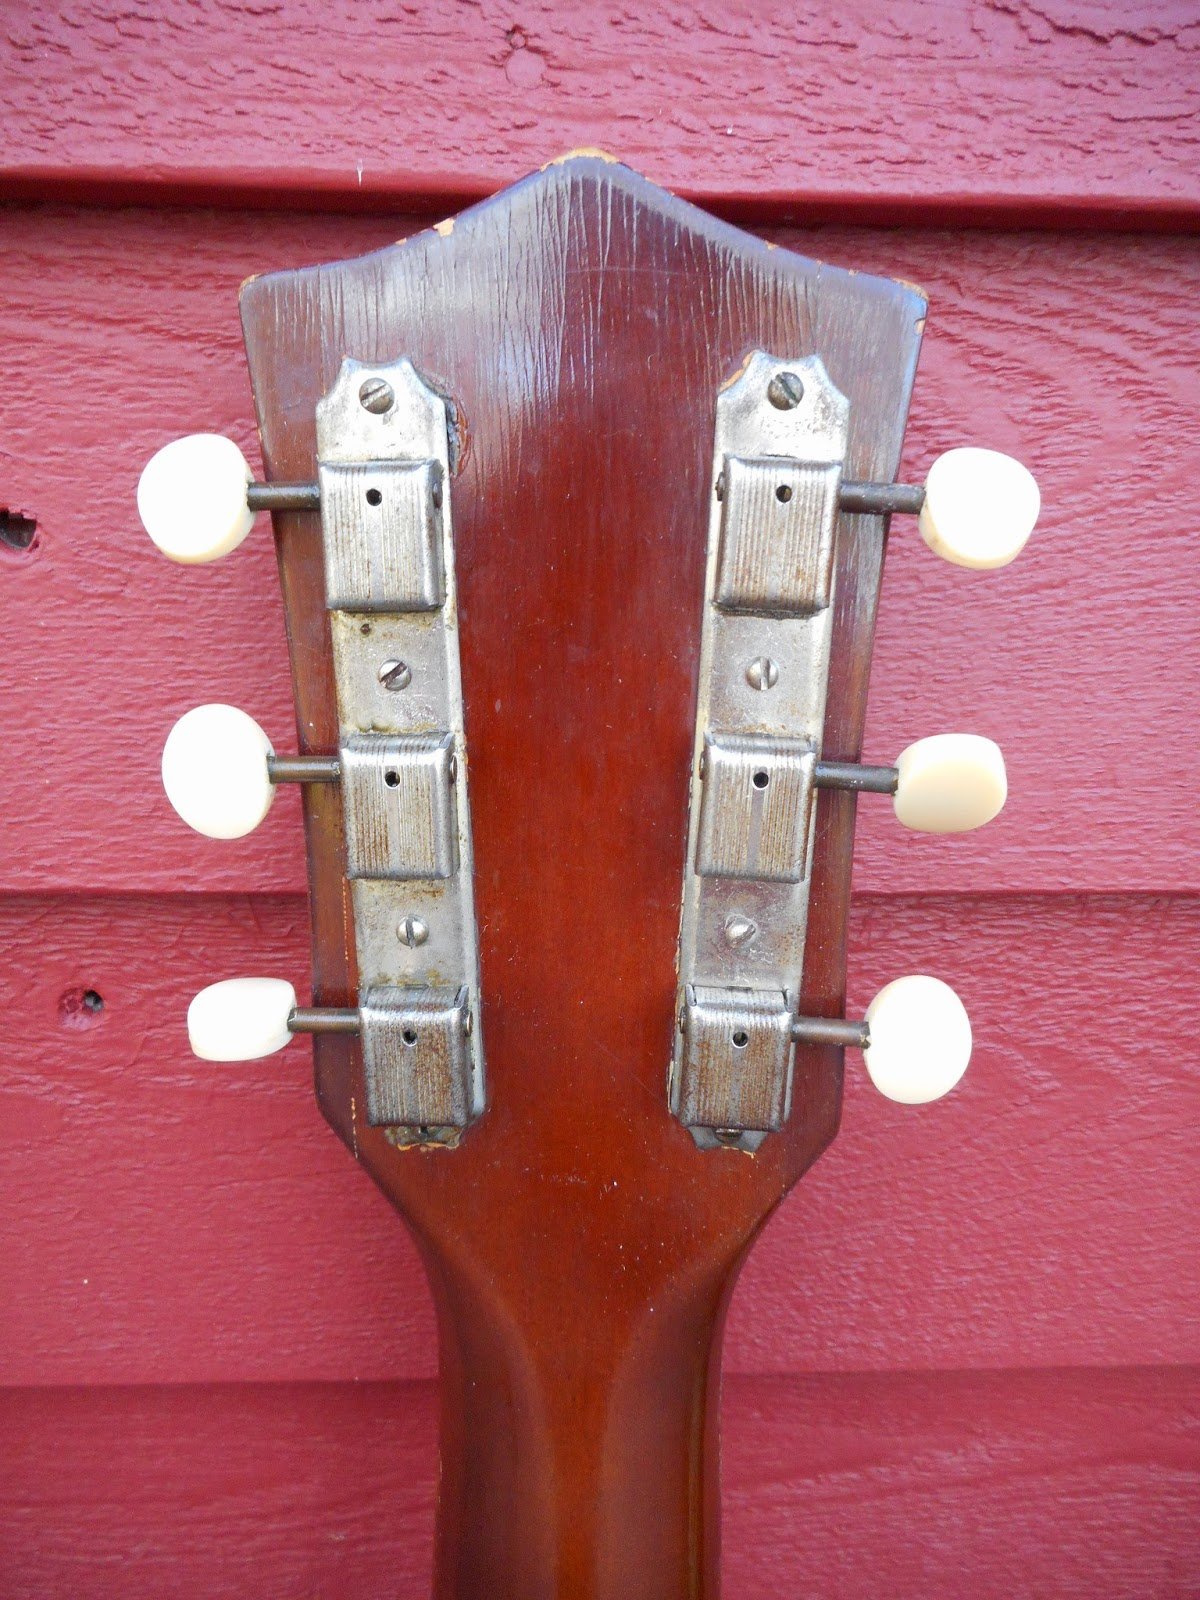 Your grandpas guitar 1950s kay k161 thin twin electric guitar another wonderful guitar mystery brought to you by the kay guitar manufacturing company cheapraybanclubmaster Gallery